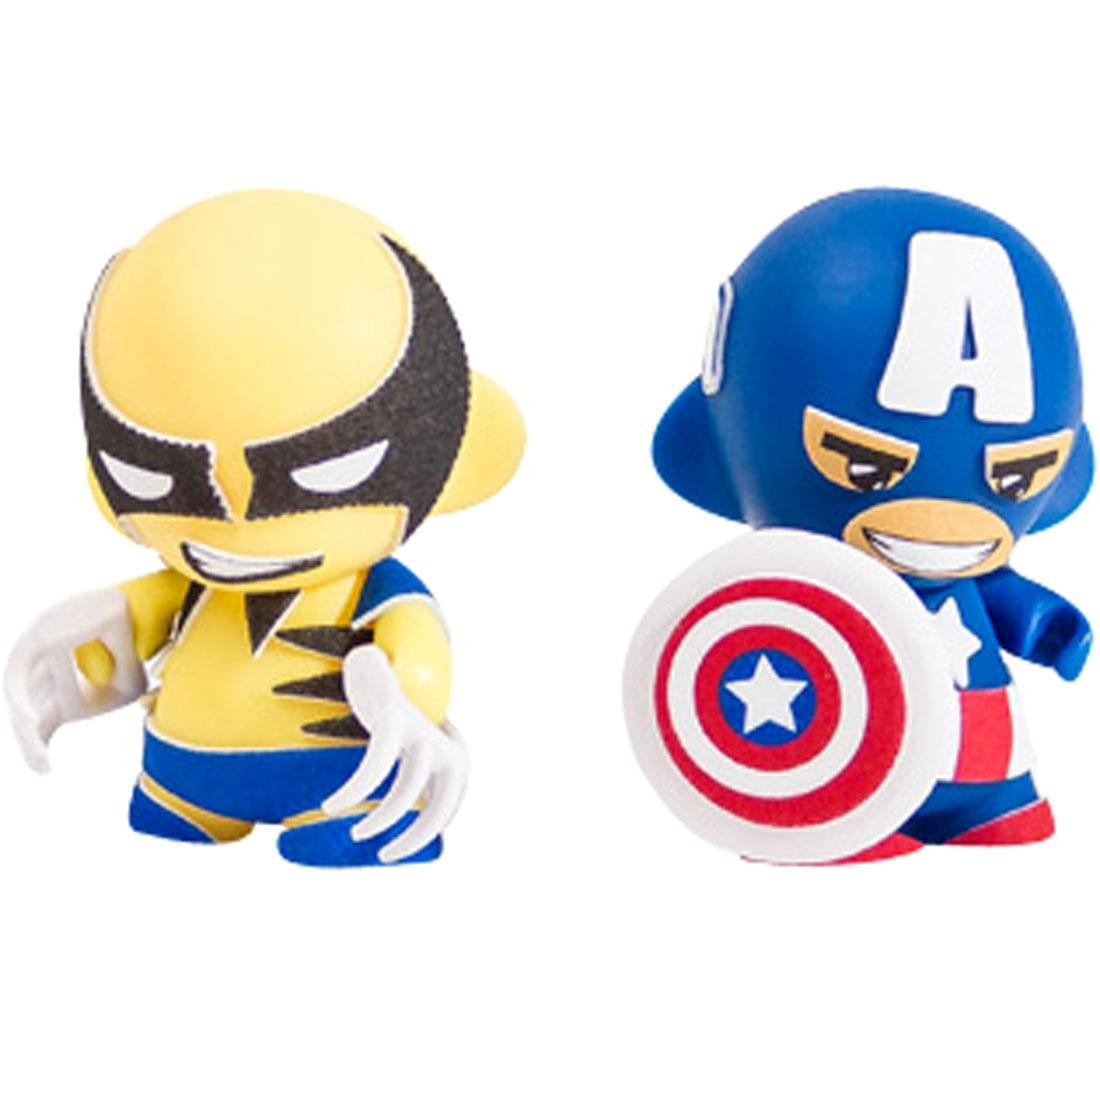 Kidrobot x Marvel Munny Micro DIY Figure 1 Blind Box